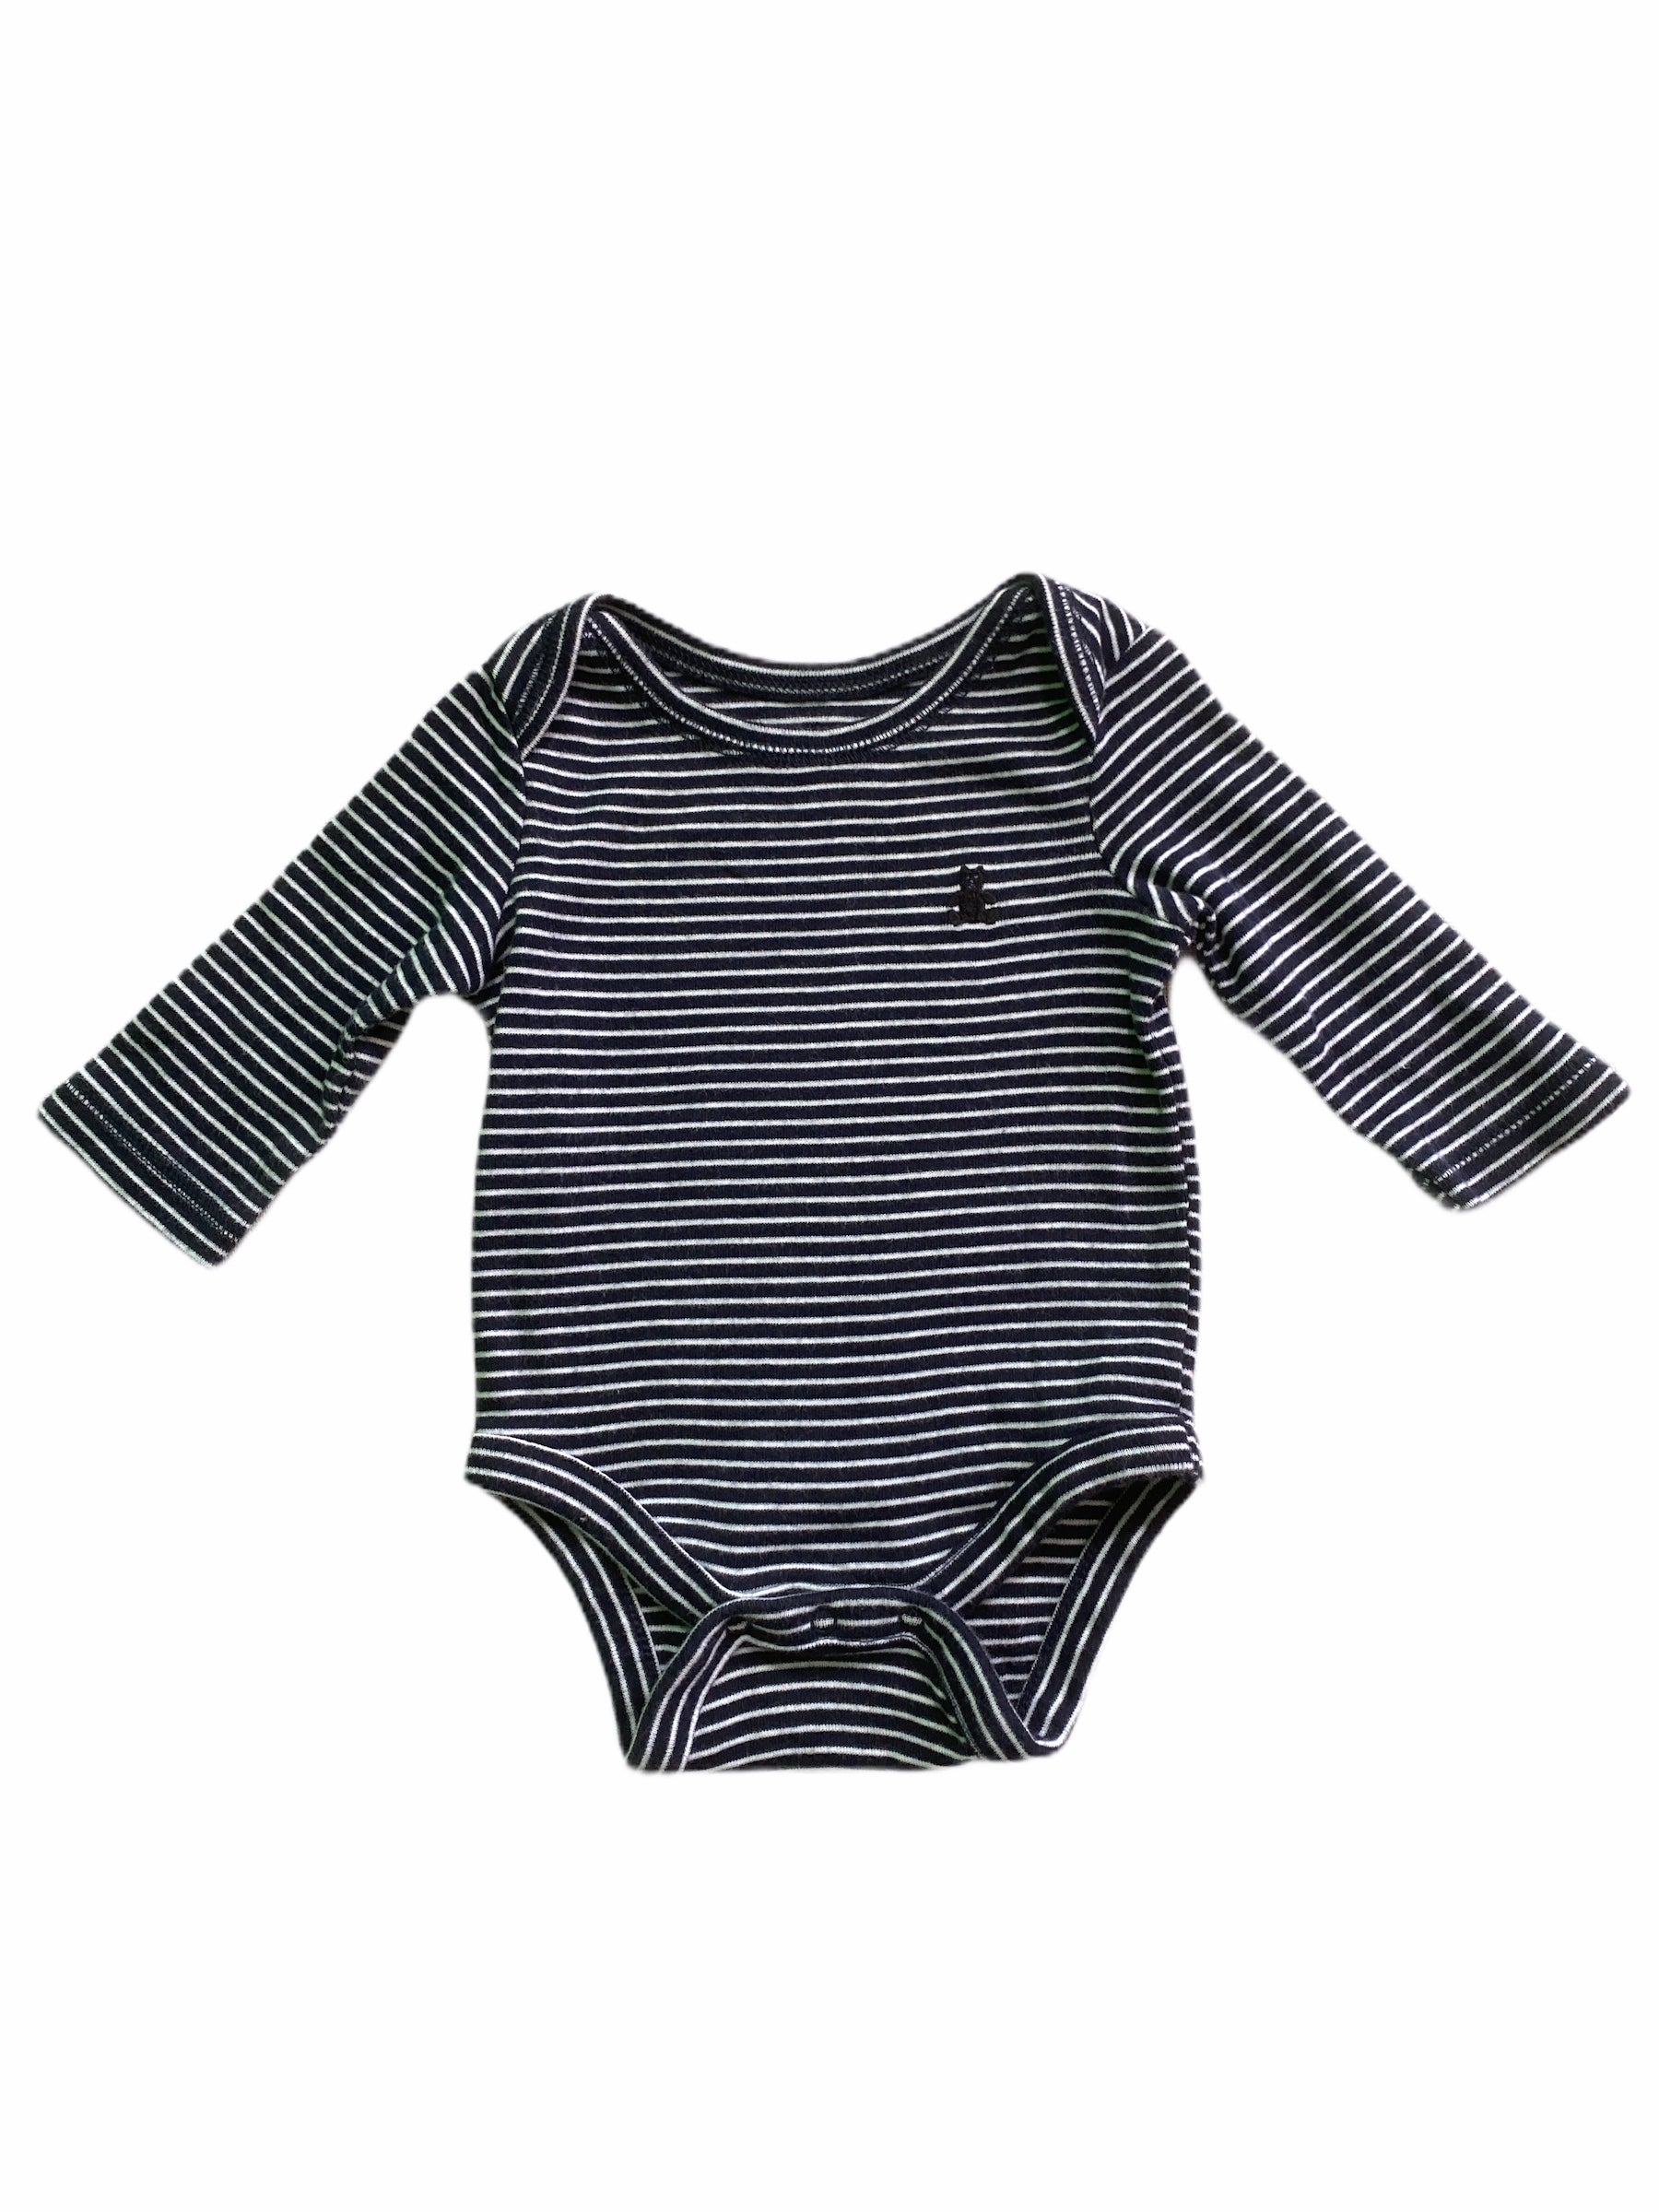 Gap Long Sleeve Navy Stripe Onesie (0/3M Boys)